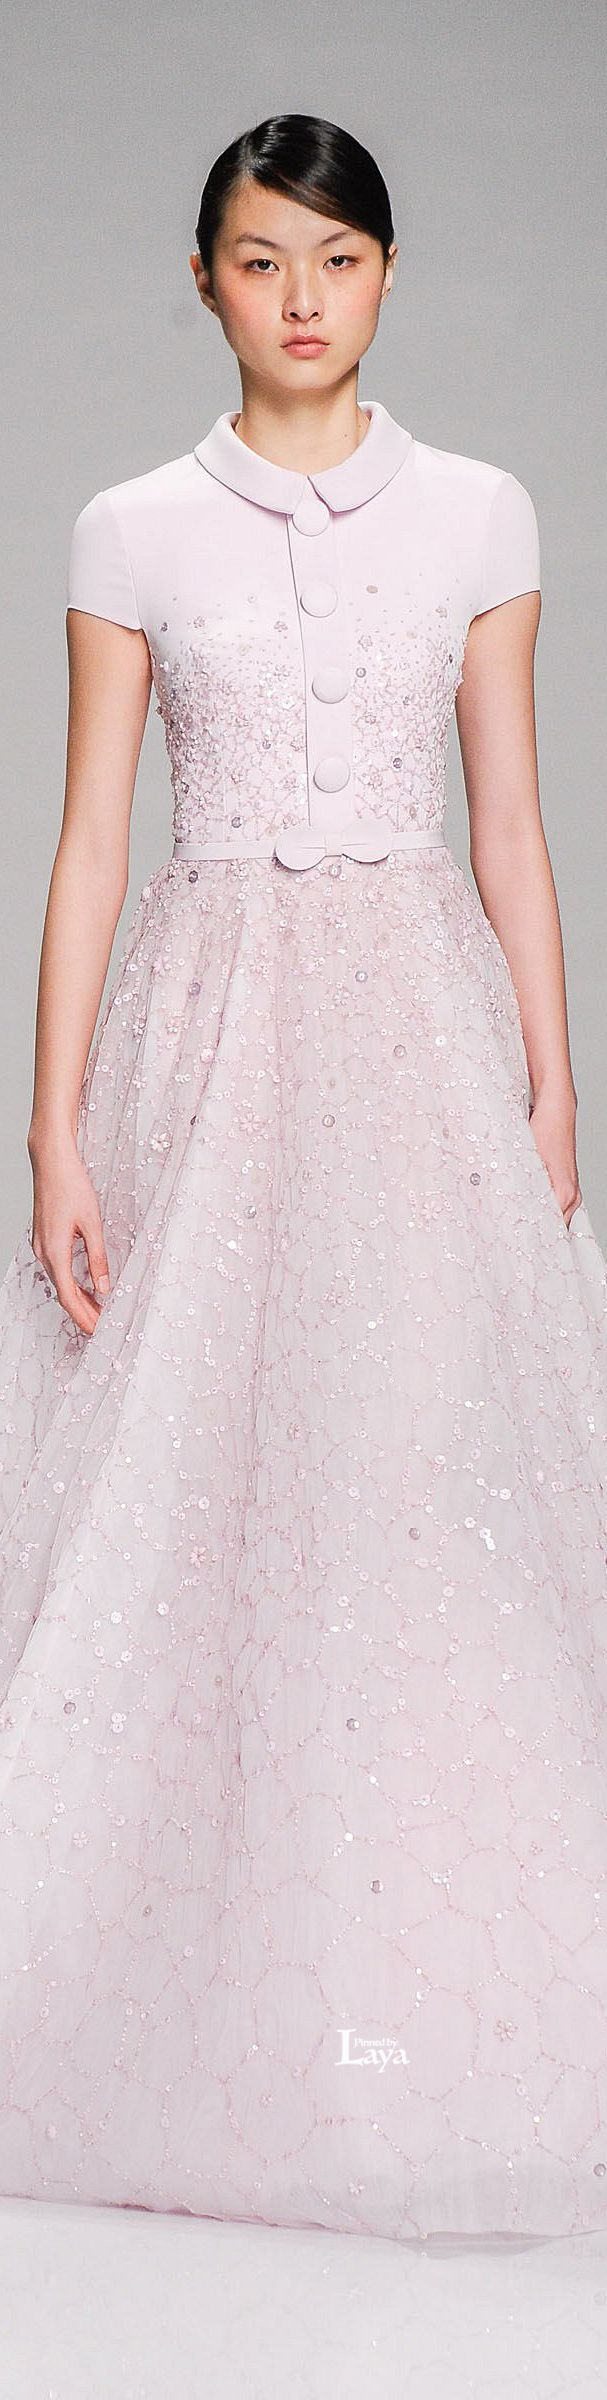 GEORGES HOBEIKA Spring-Summer 2015 COUTURE